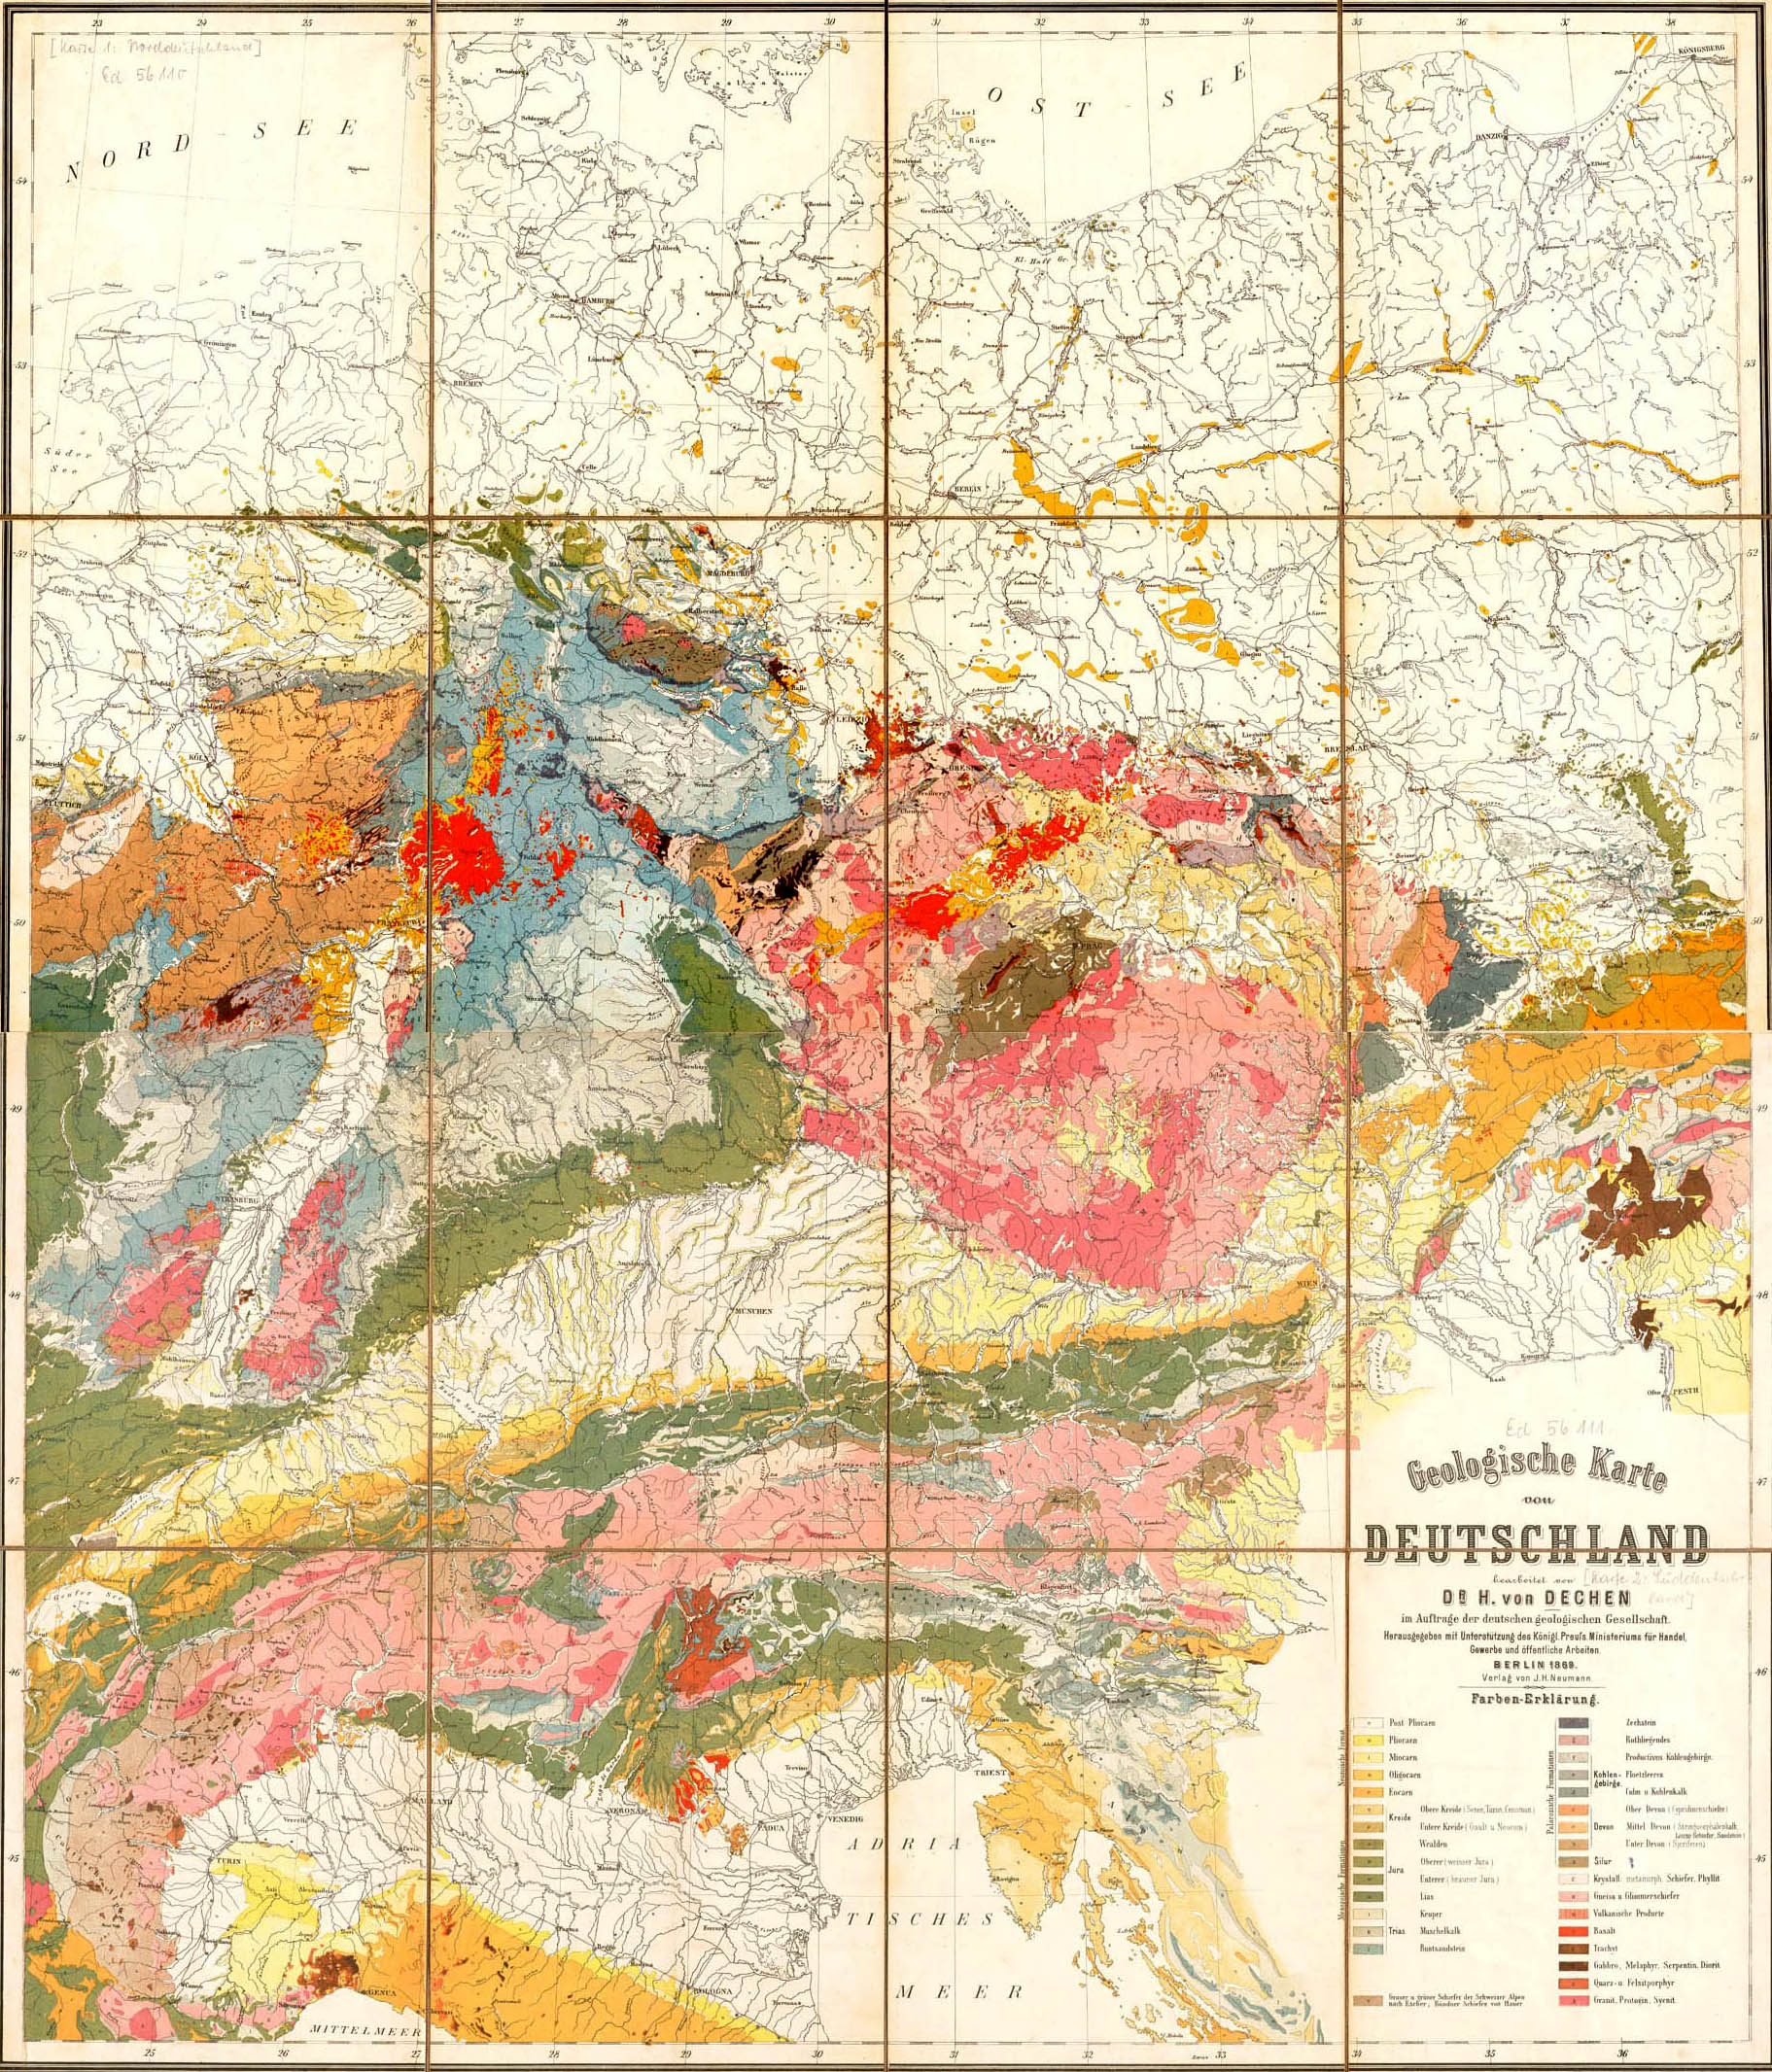 FileGeological map germany 1869jpg Wikimedia Commons